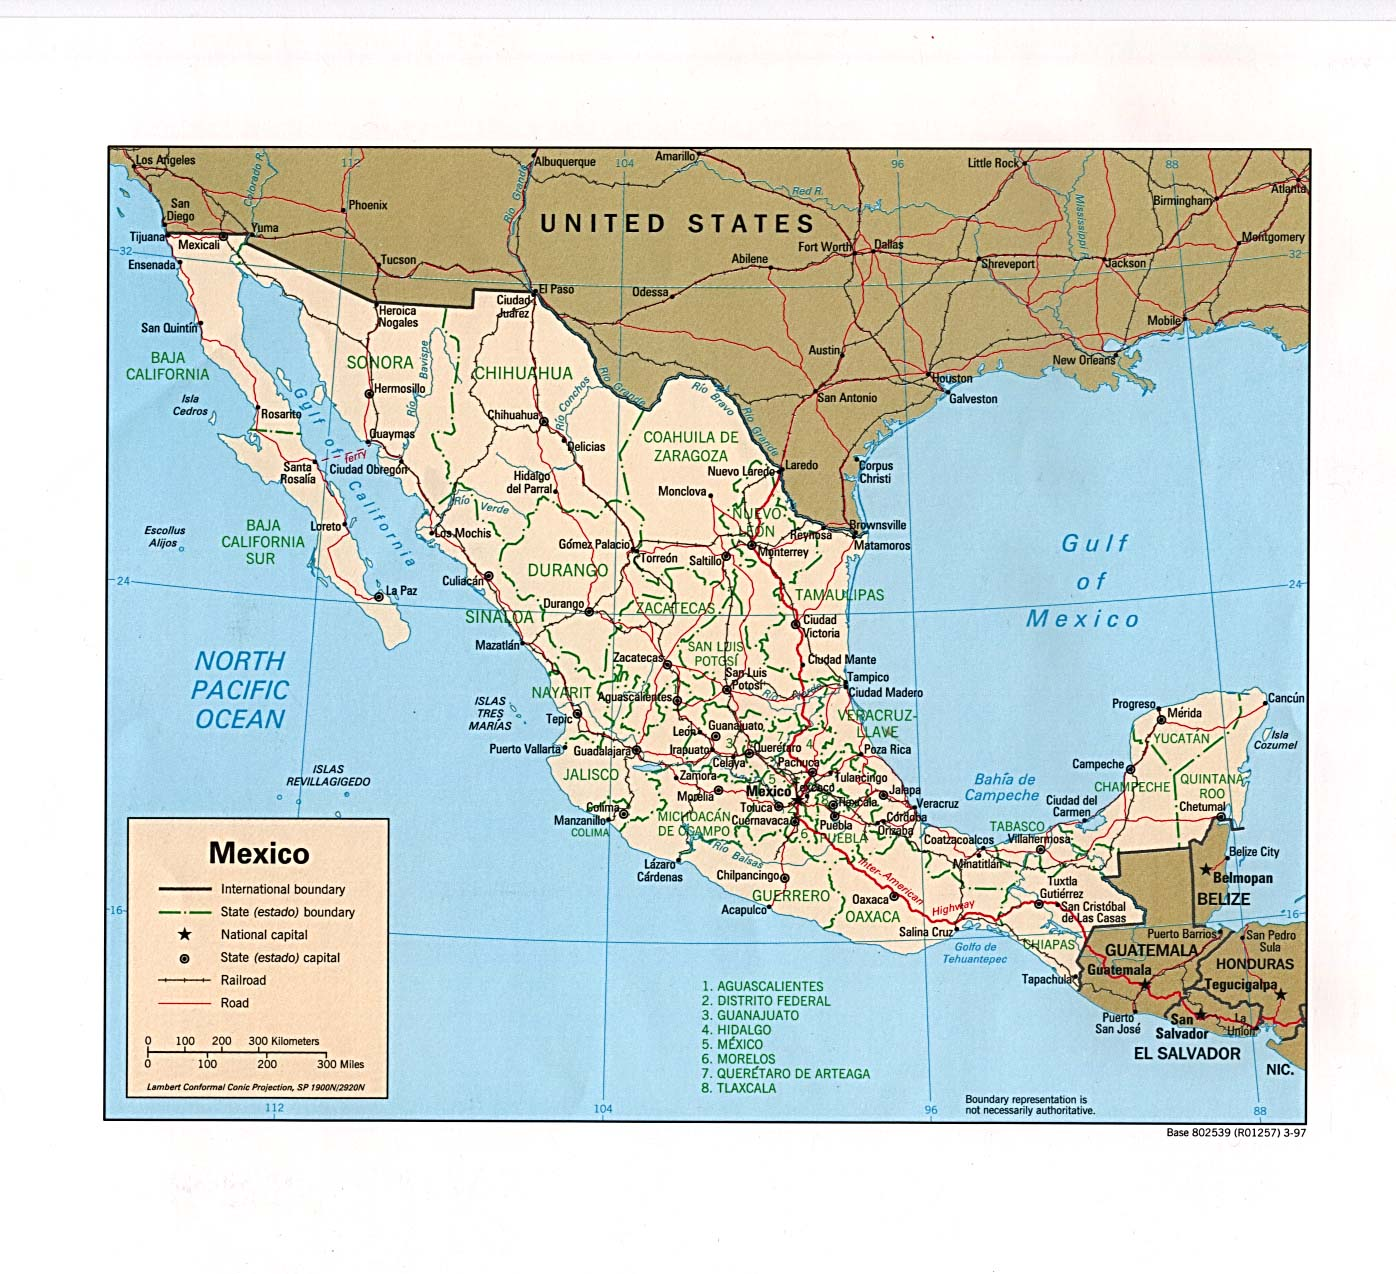 Mexico Tourist Map Mexico mappery – Tourist Map Of Mexico City